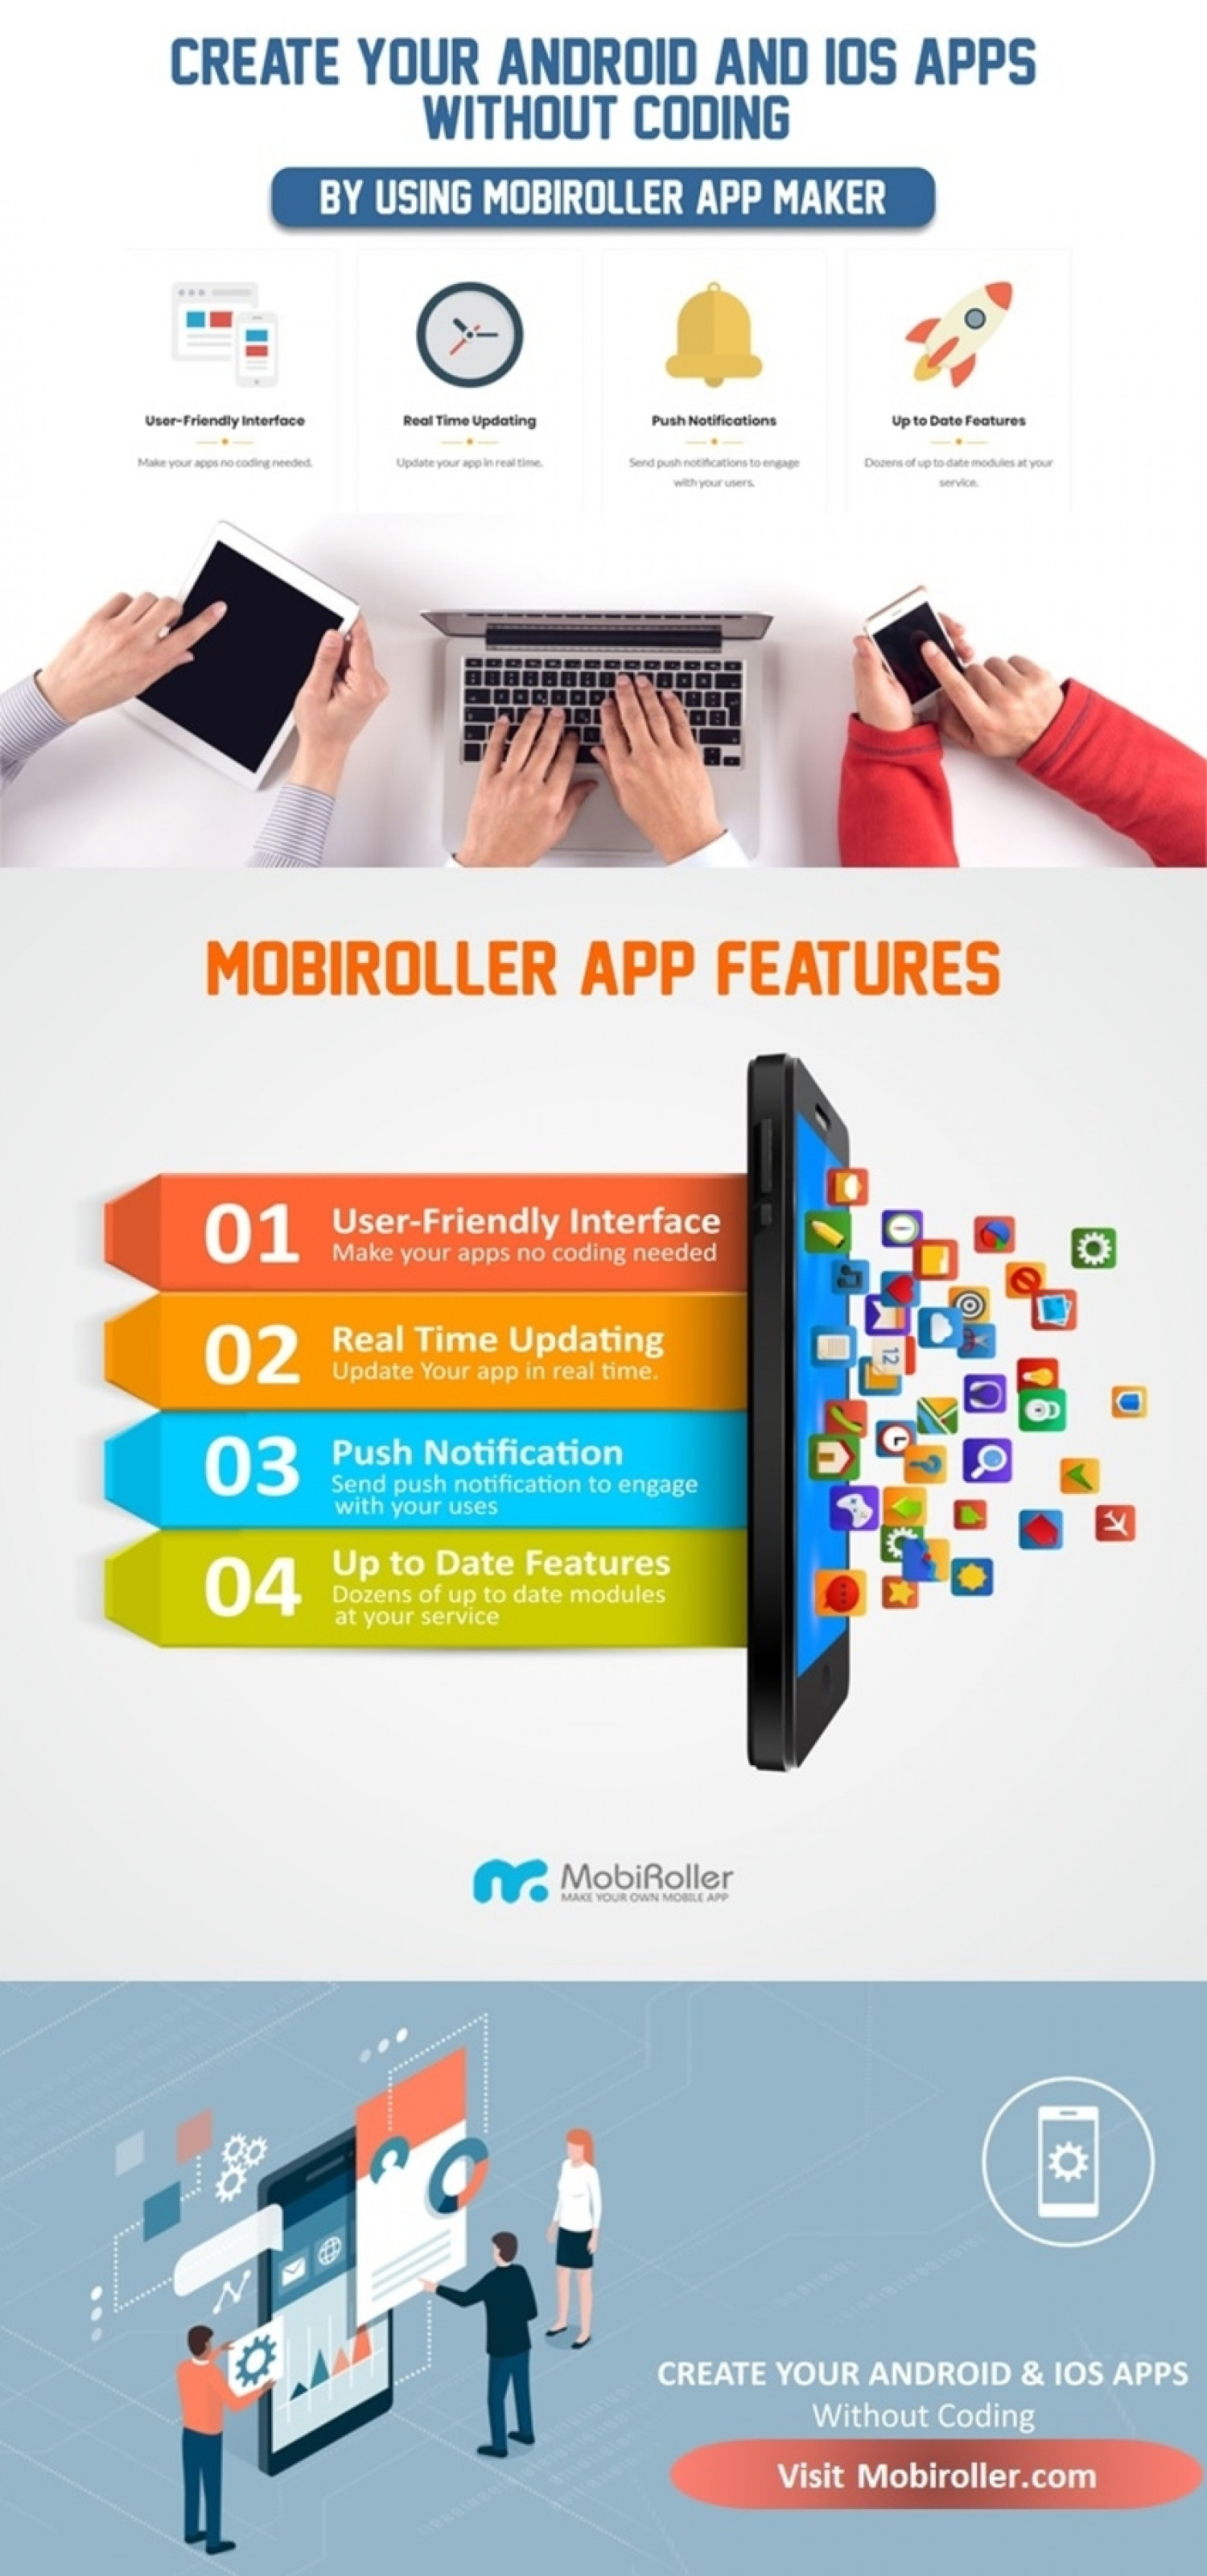 Create Android Apps Without Coding Infographic